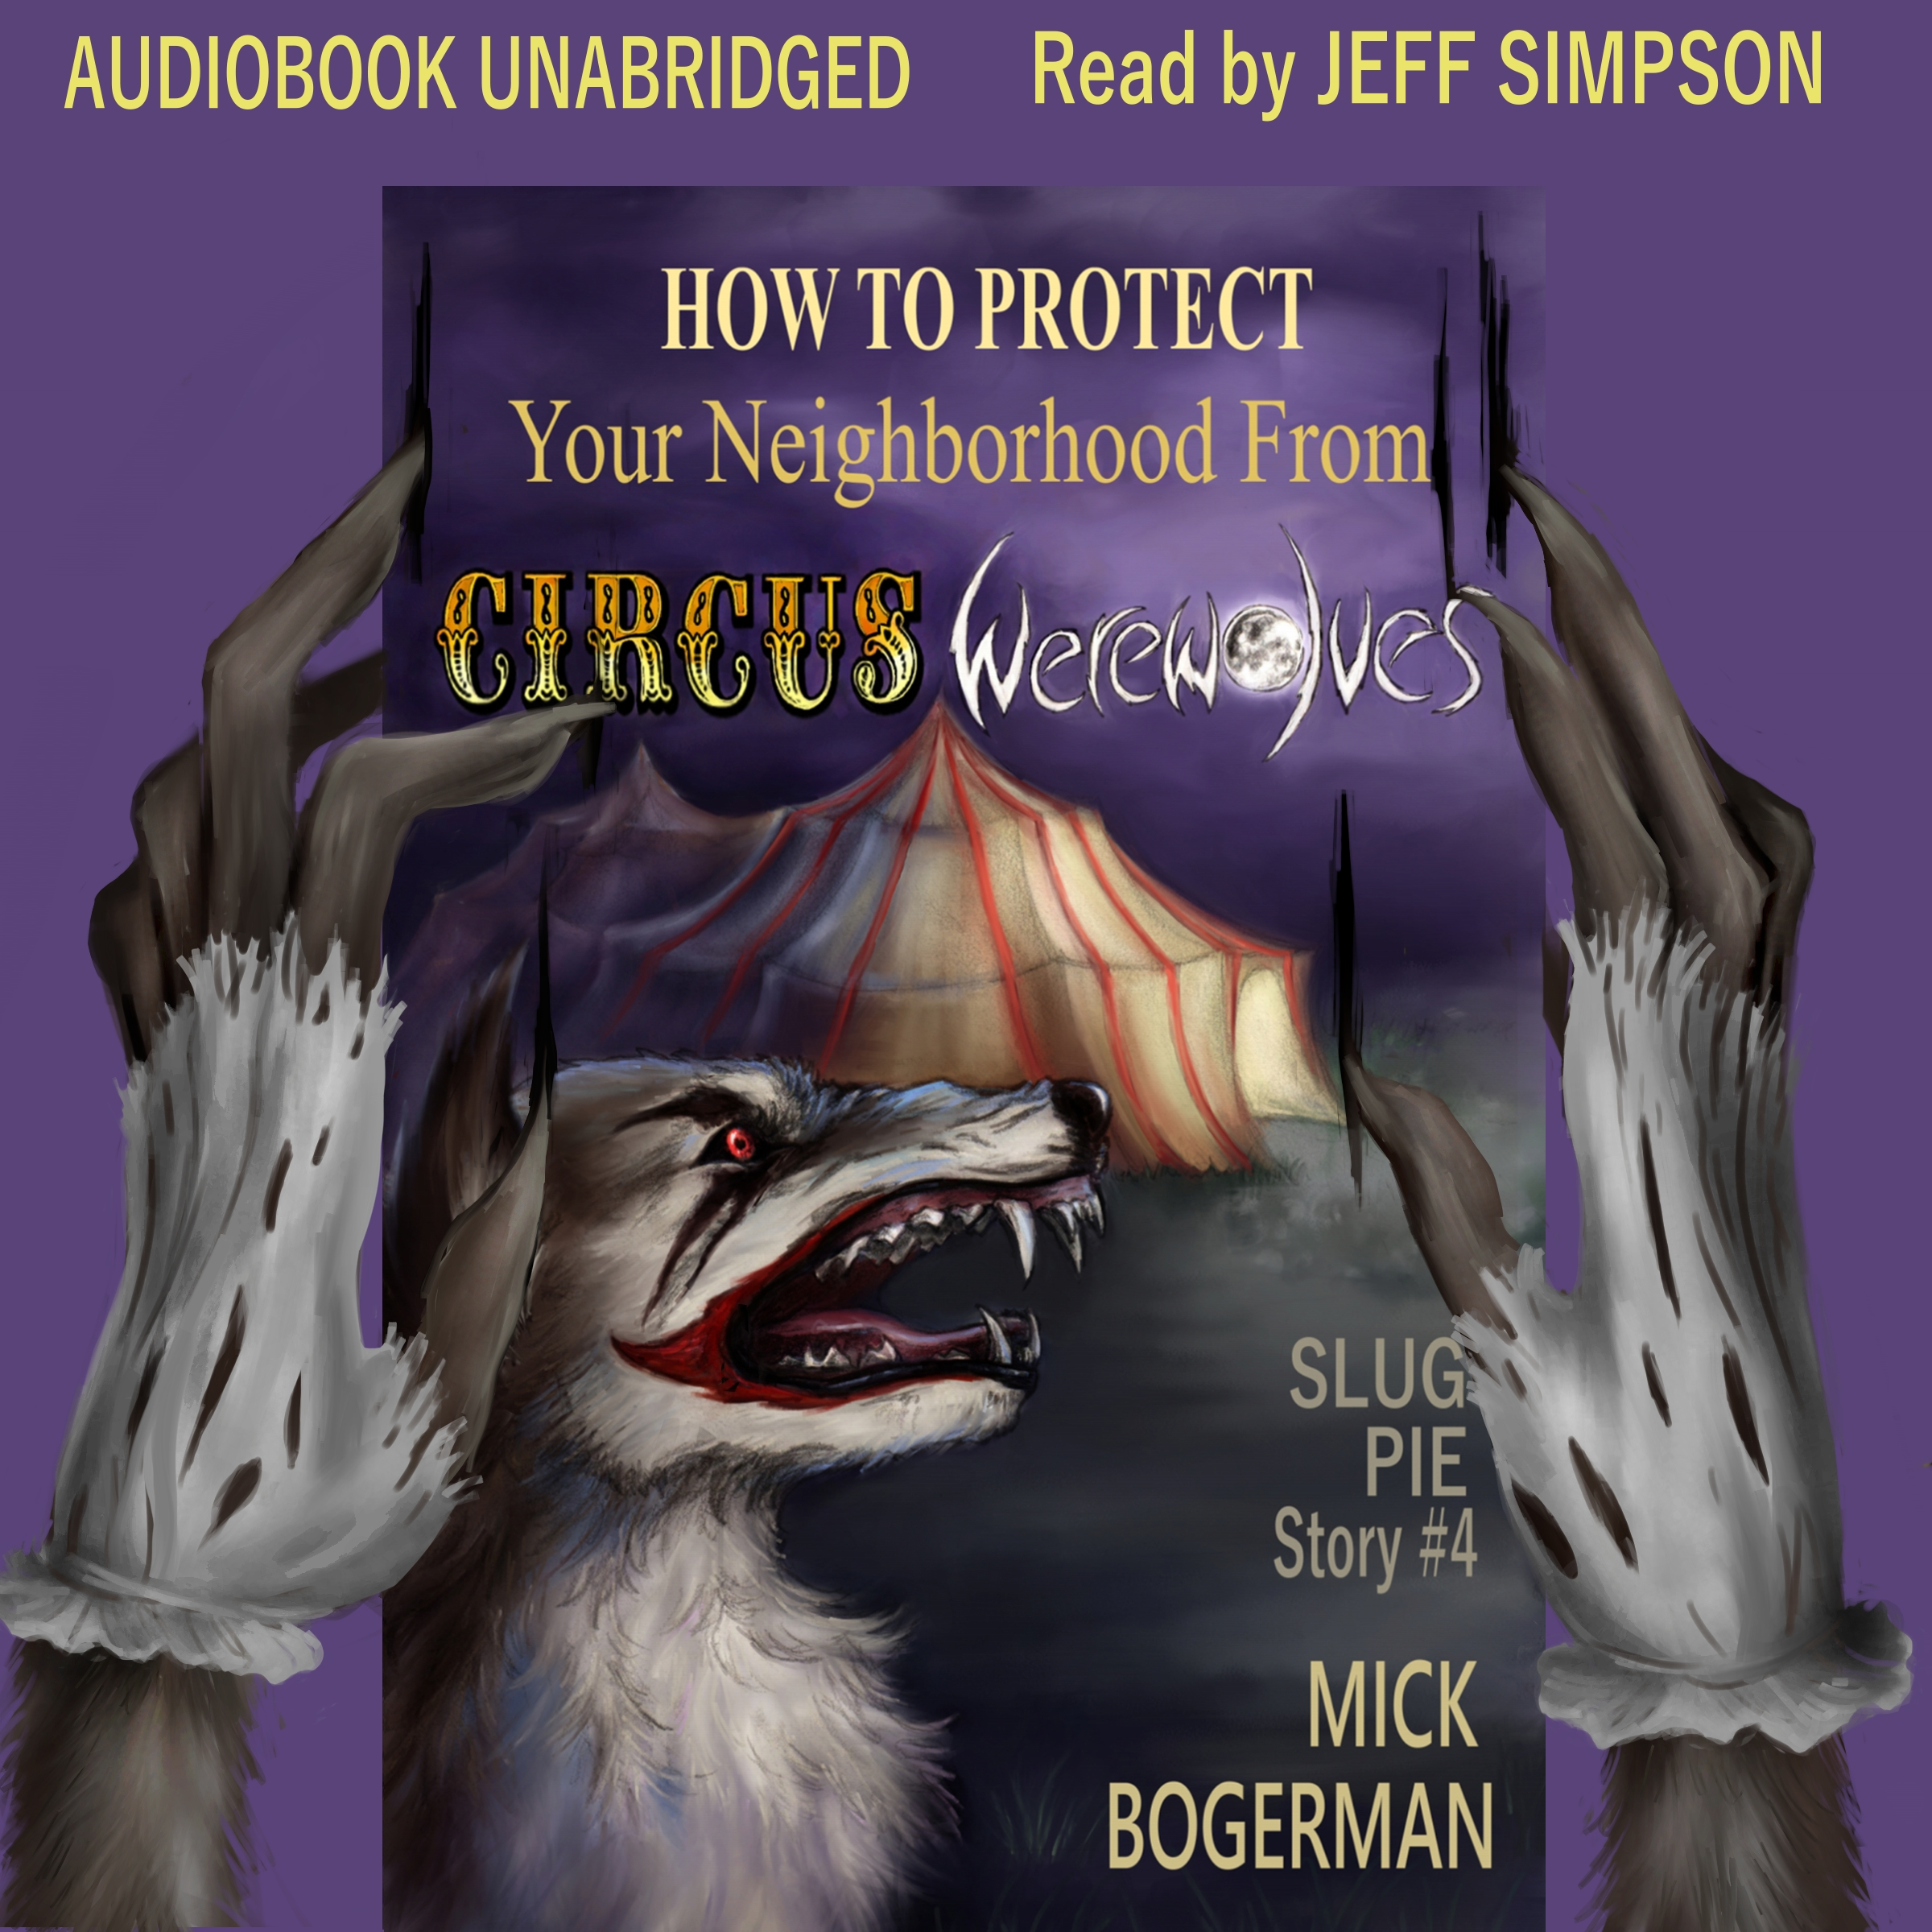 SP 4 Werewolf audio book